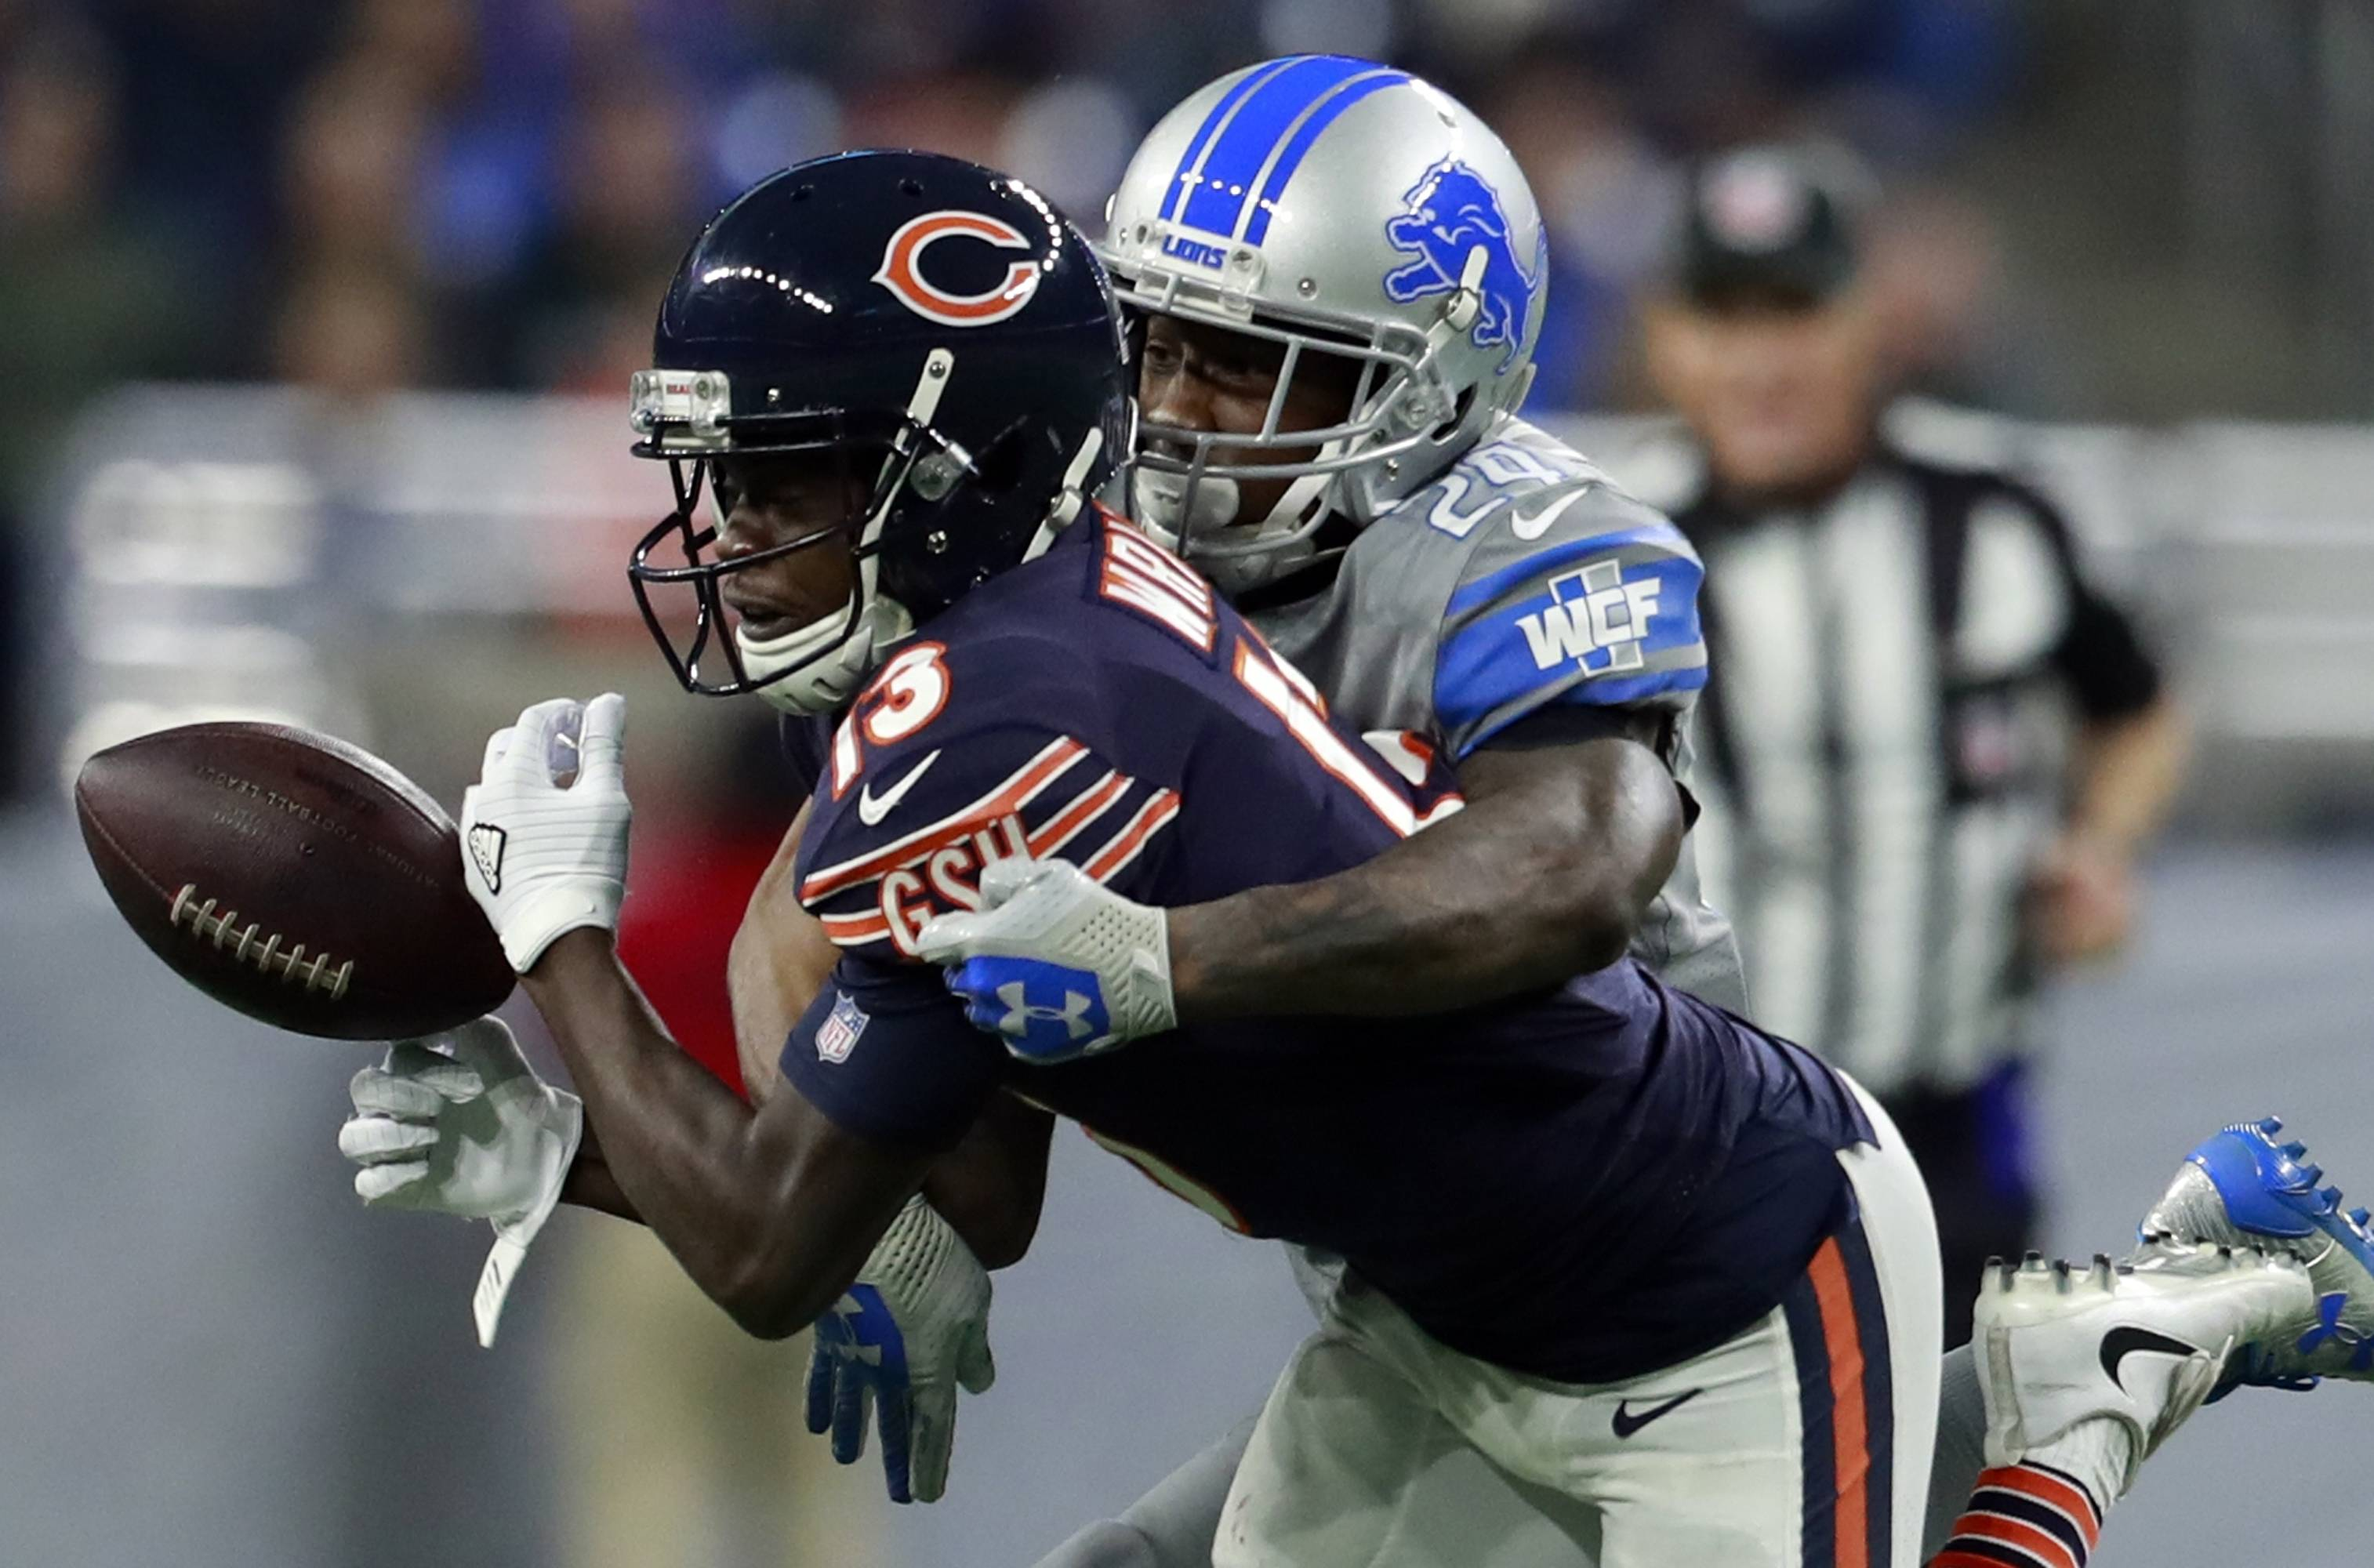 Detroit Lions cornerback Nevin Lawson (24) deflects a pass intended for Chicago Bears wide receiver Kendall Wright (13) during the second half of an NFL football game, Saturday, Dec. 16, 2017, in Detroit. (AP Photo/Rey Del Rio)